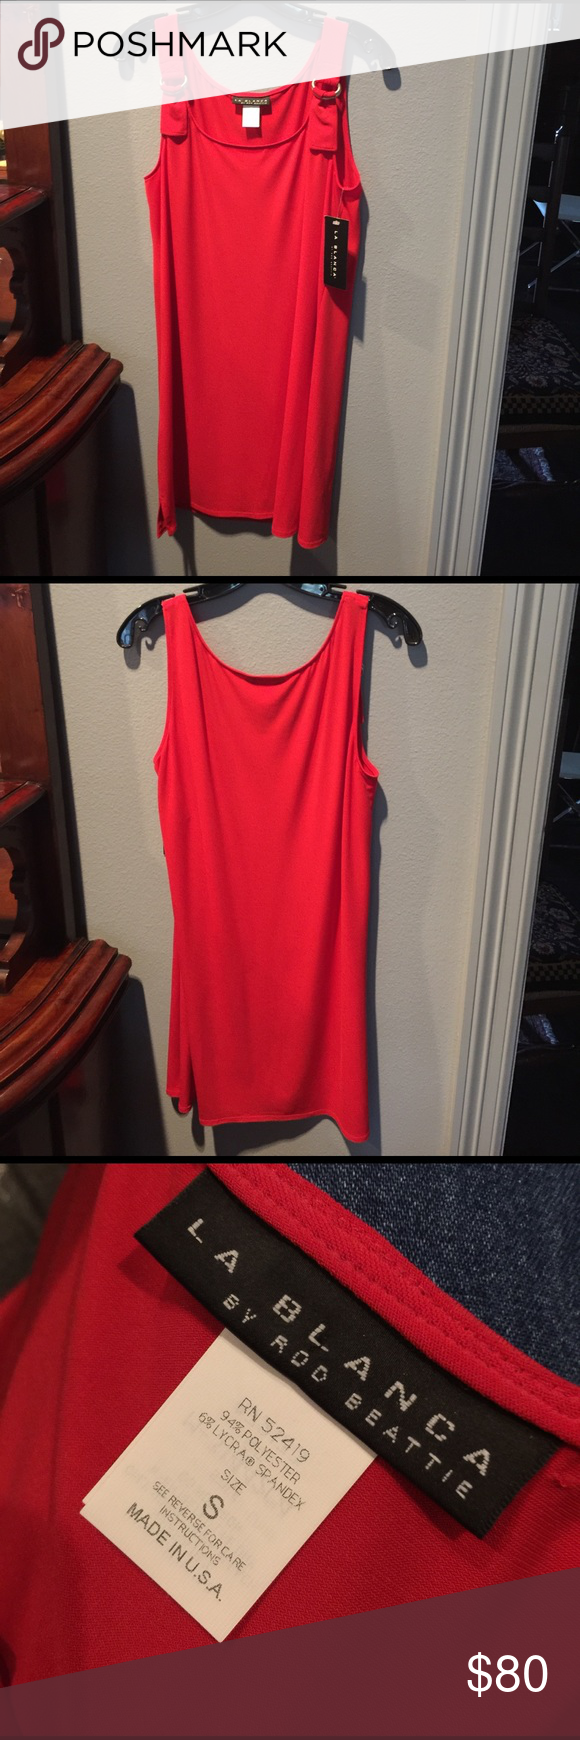 La blanca by rod beattie short red dresses customer support and